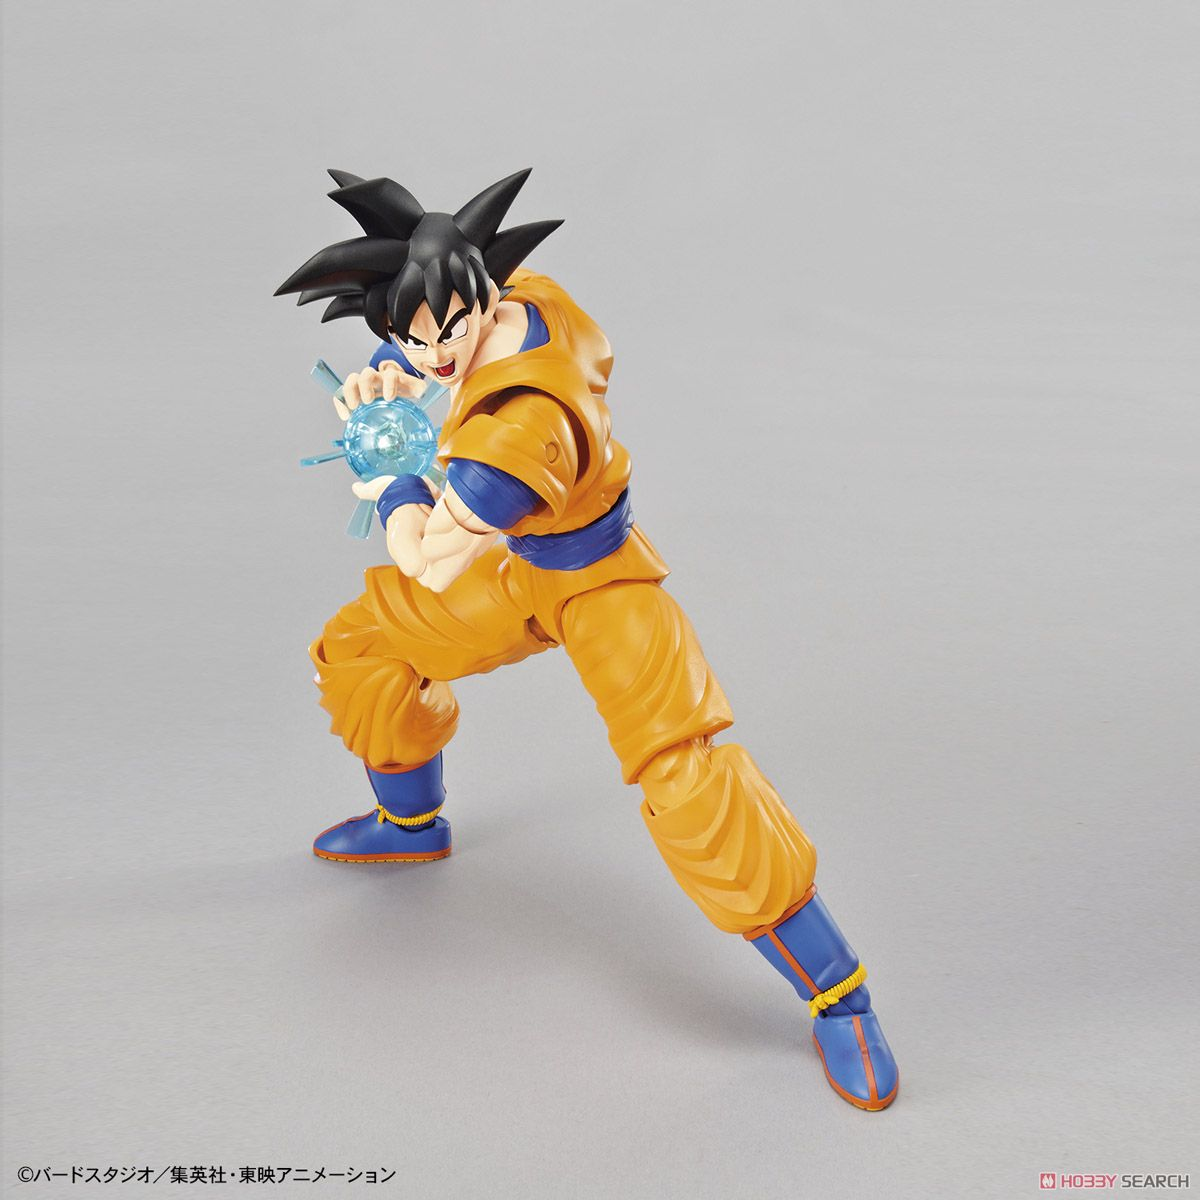 Figure-rise Standard Son Goku & Klilyn DX Set (Plastic model) Item picture6